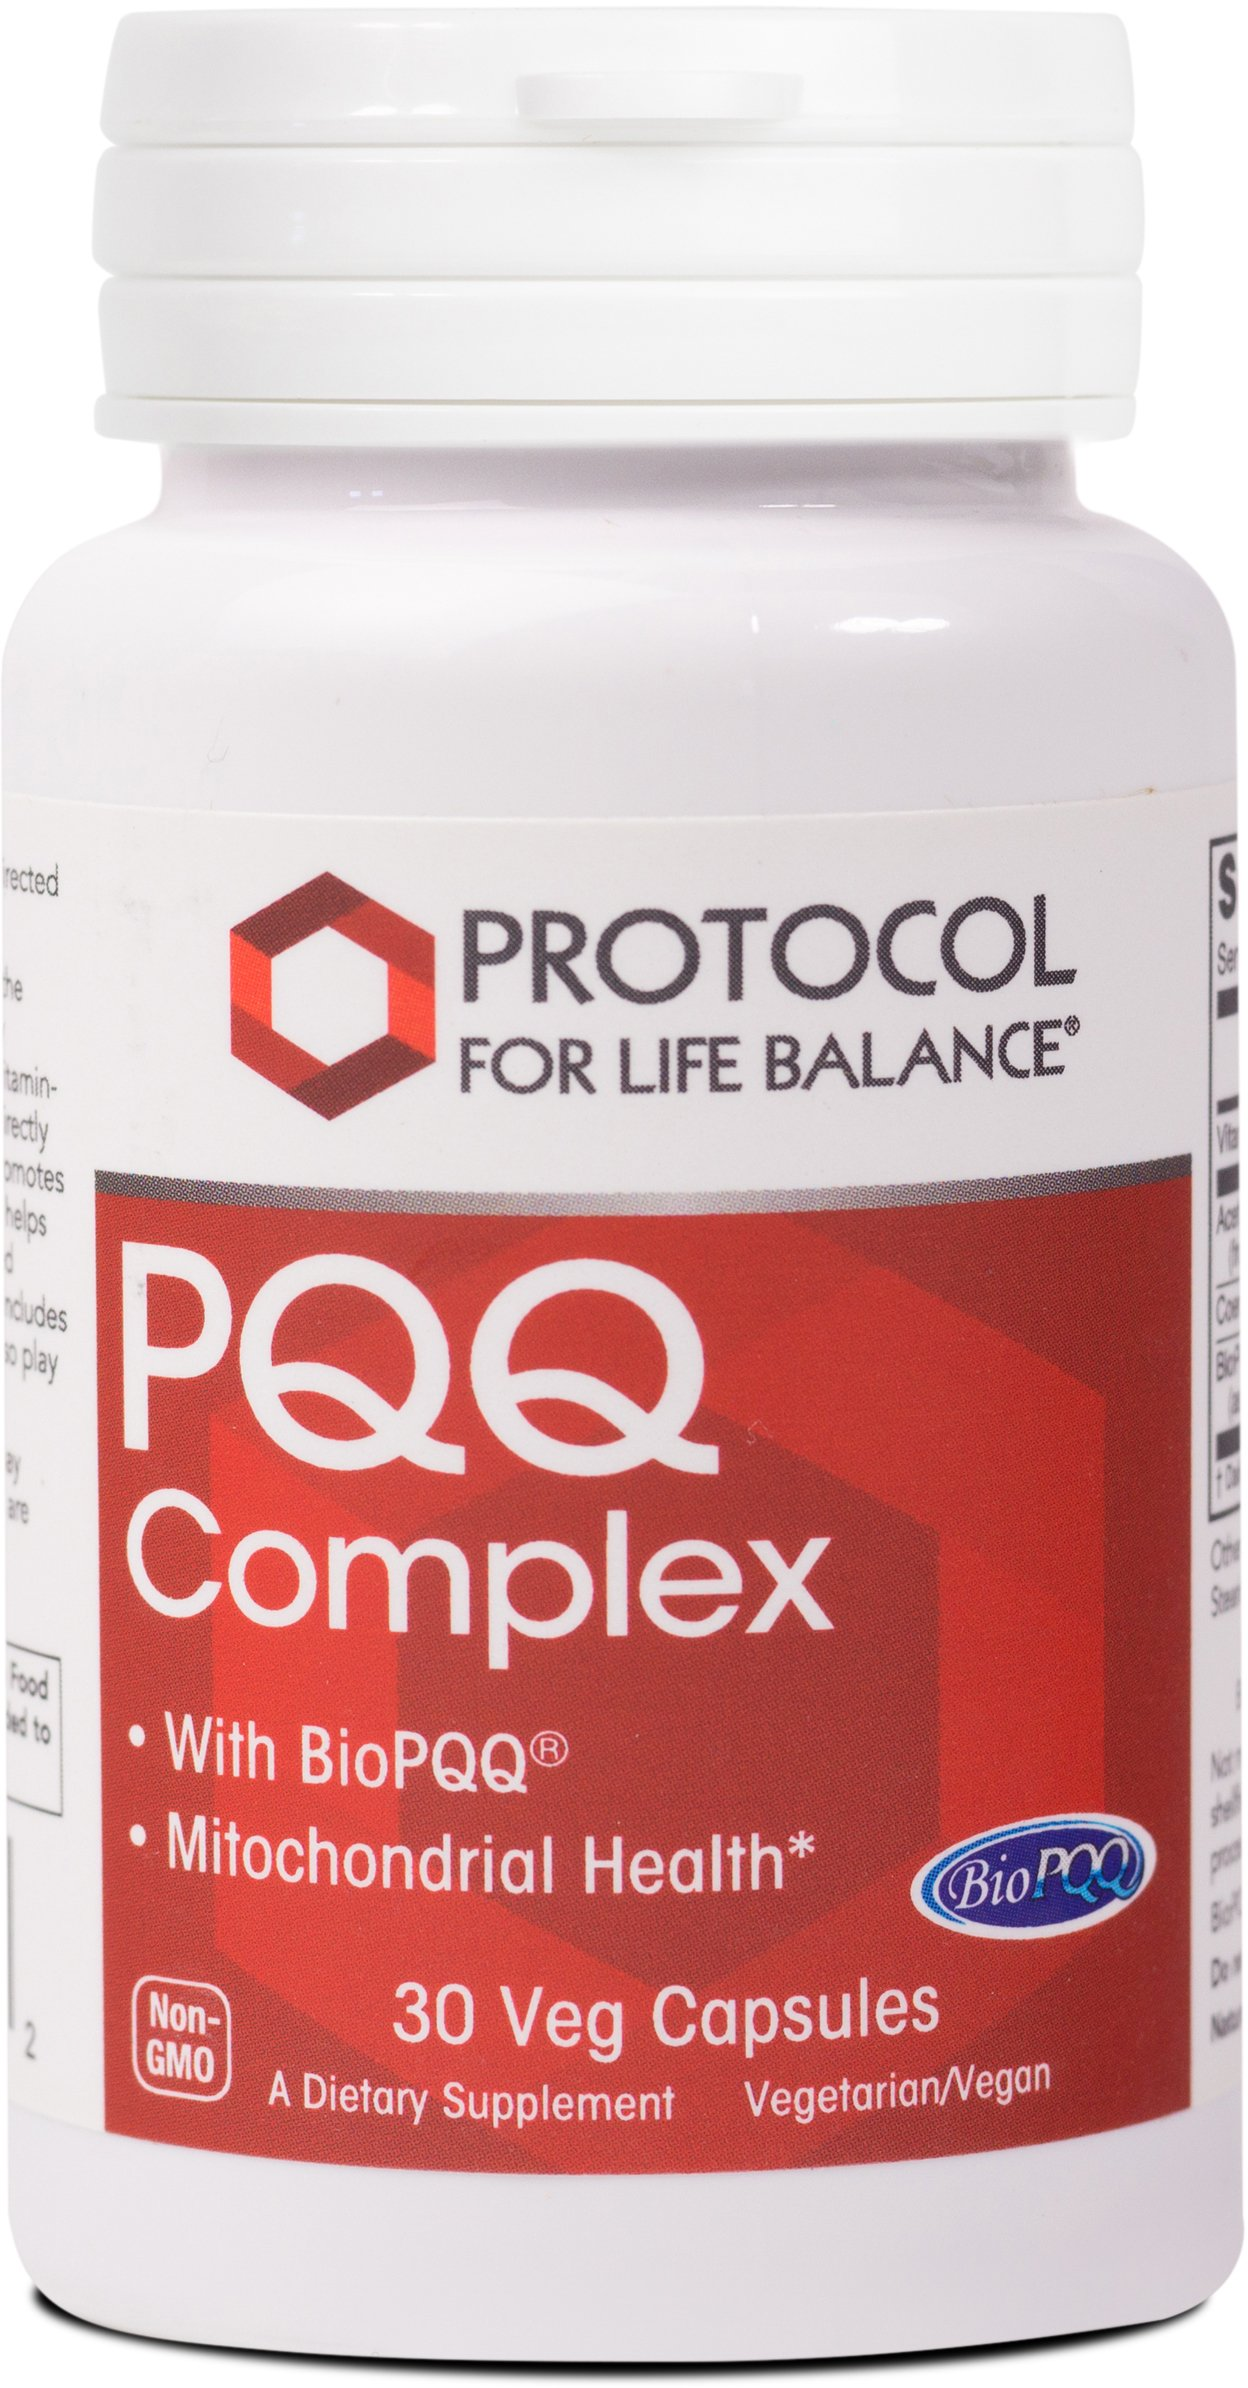 Protocol For Life Balance - PQQ Complex - with BioPQQ® for Mitochondrial Health and Natural Energy Production - 30 Veg Capsules